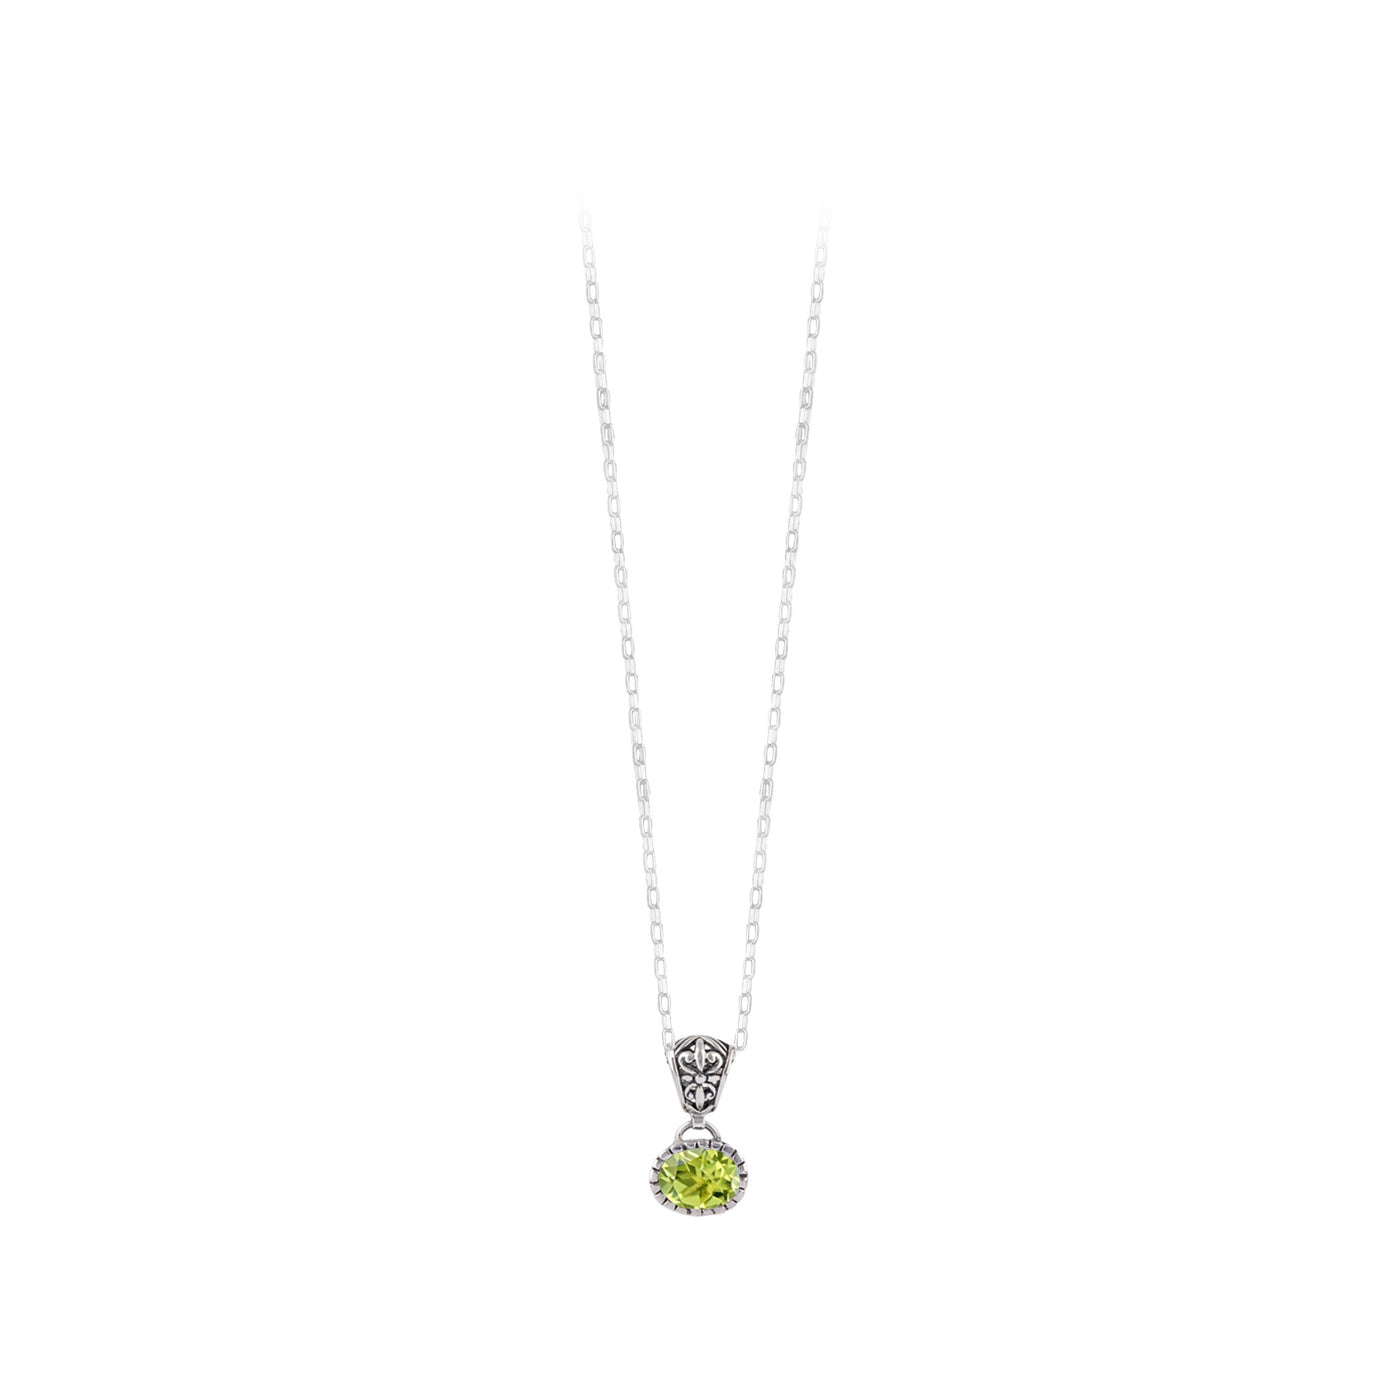 JD N70892 PERIDOT SIDE OVAL NECKLACE